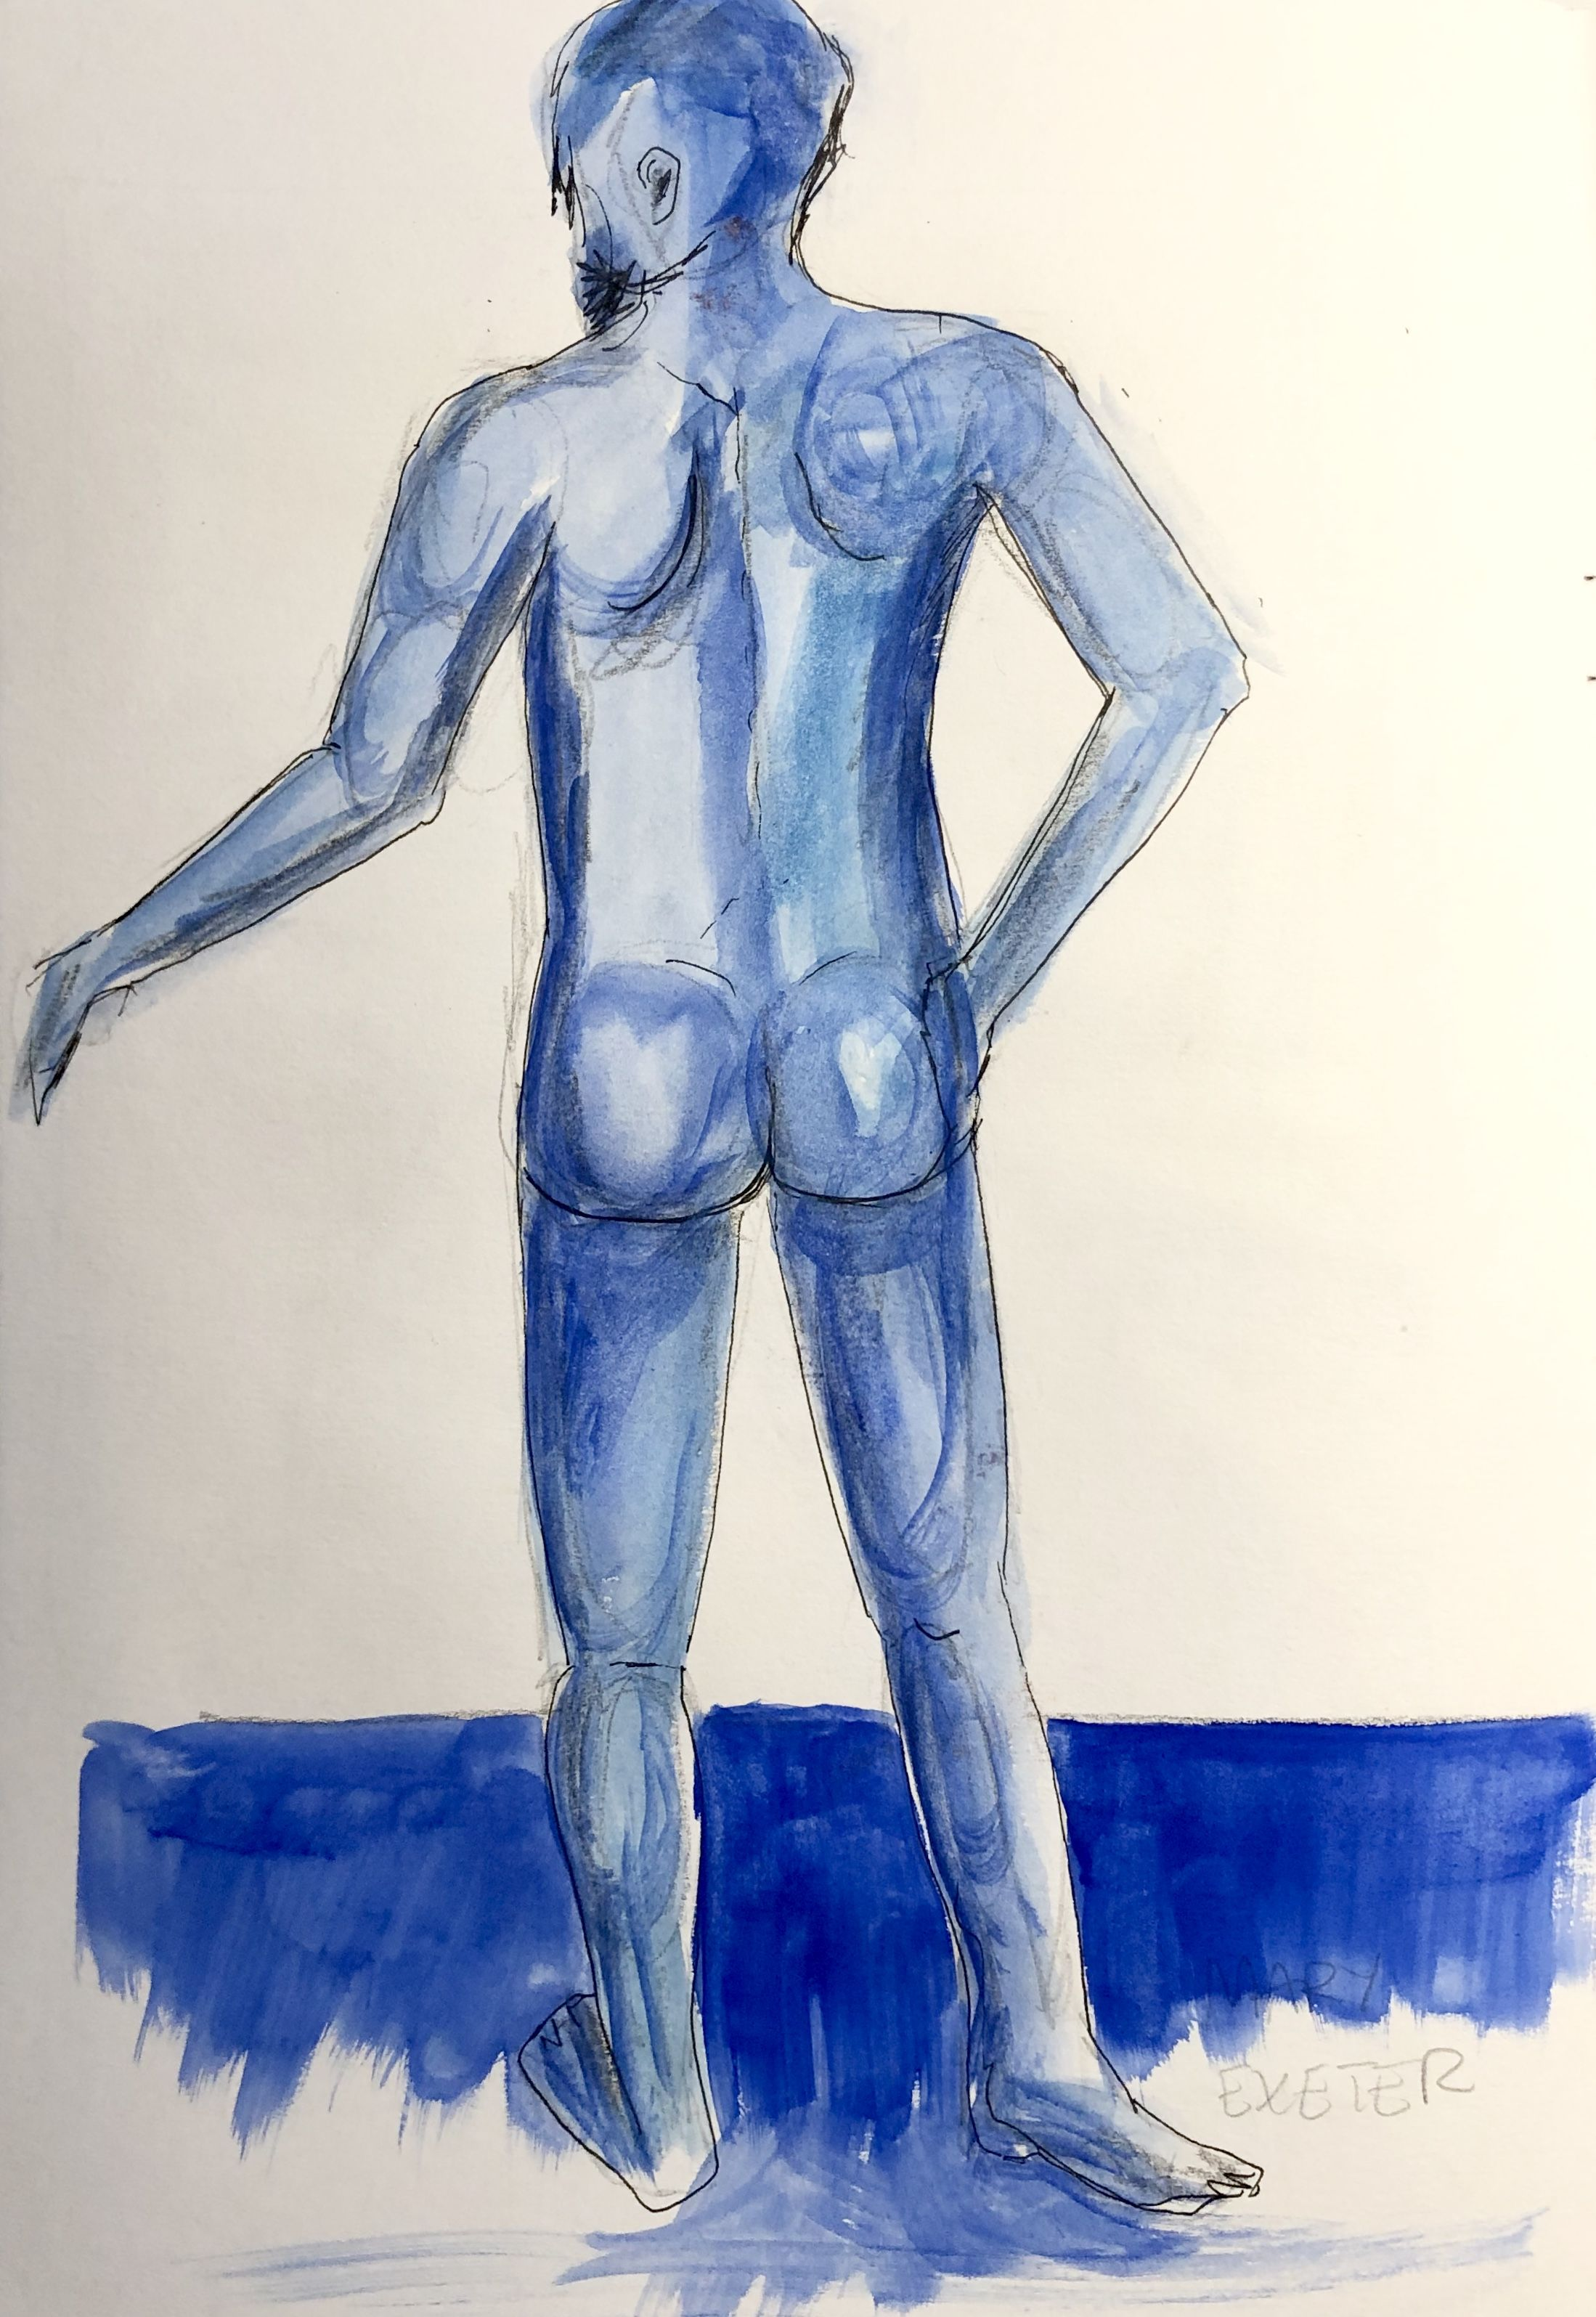 Drawn while watching bbc4 life drawing live 040220